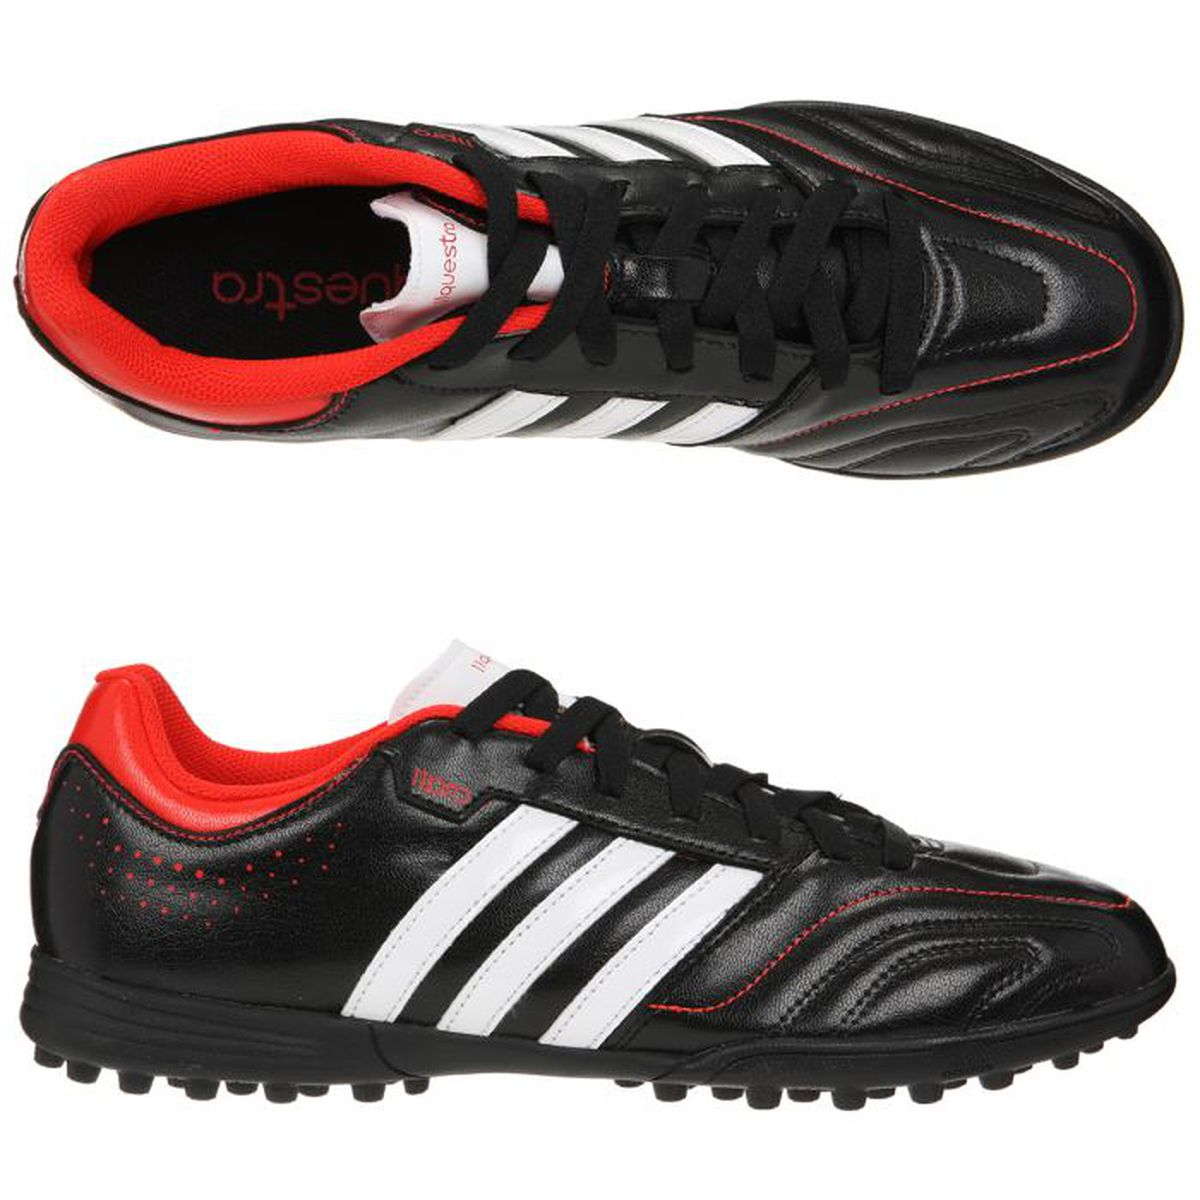 ADIDAS Chaussures Foot 11Questra TRX TF Homme Prix pas